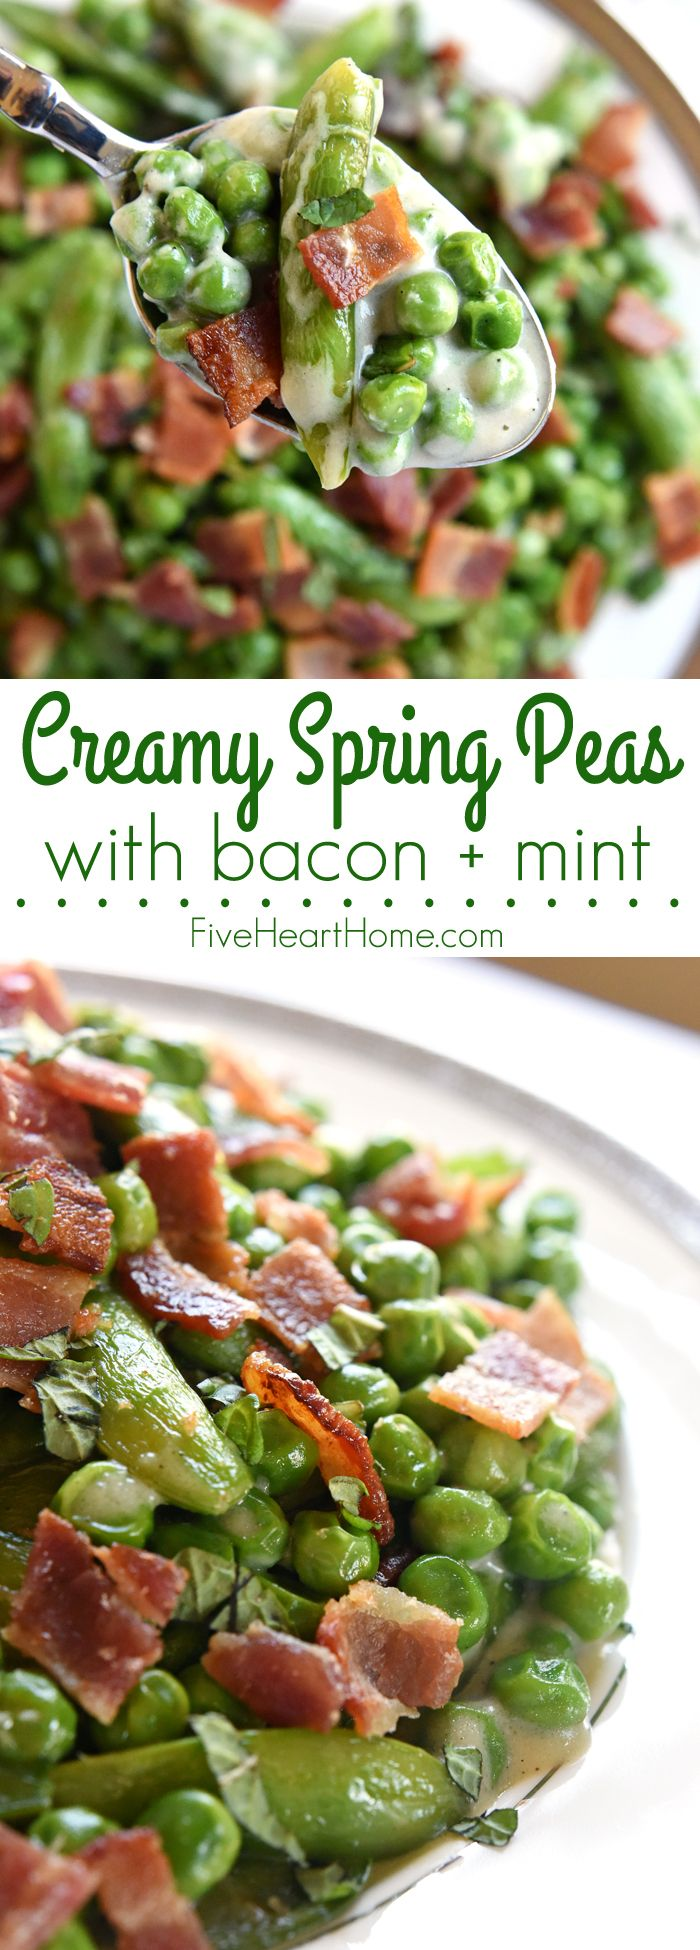 Creamy Spring Peas with Bacon + Mint FoodBlogs.com